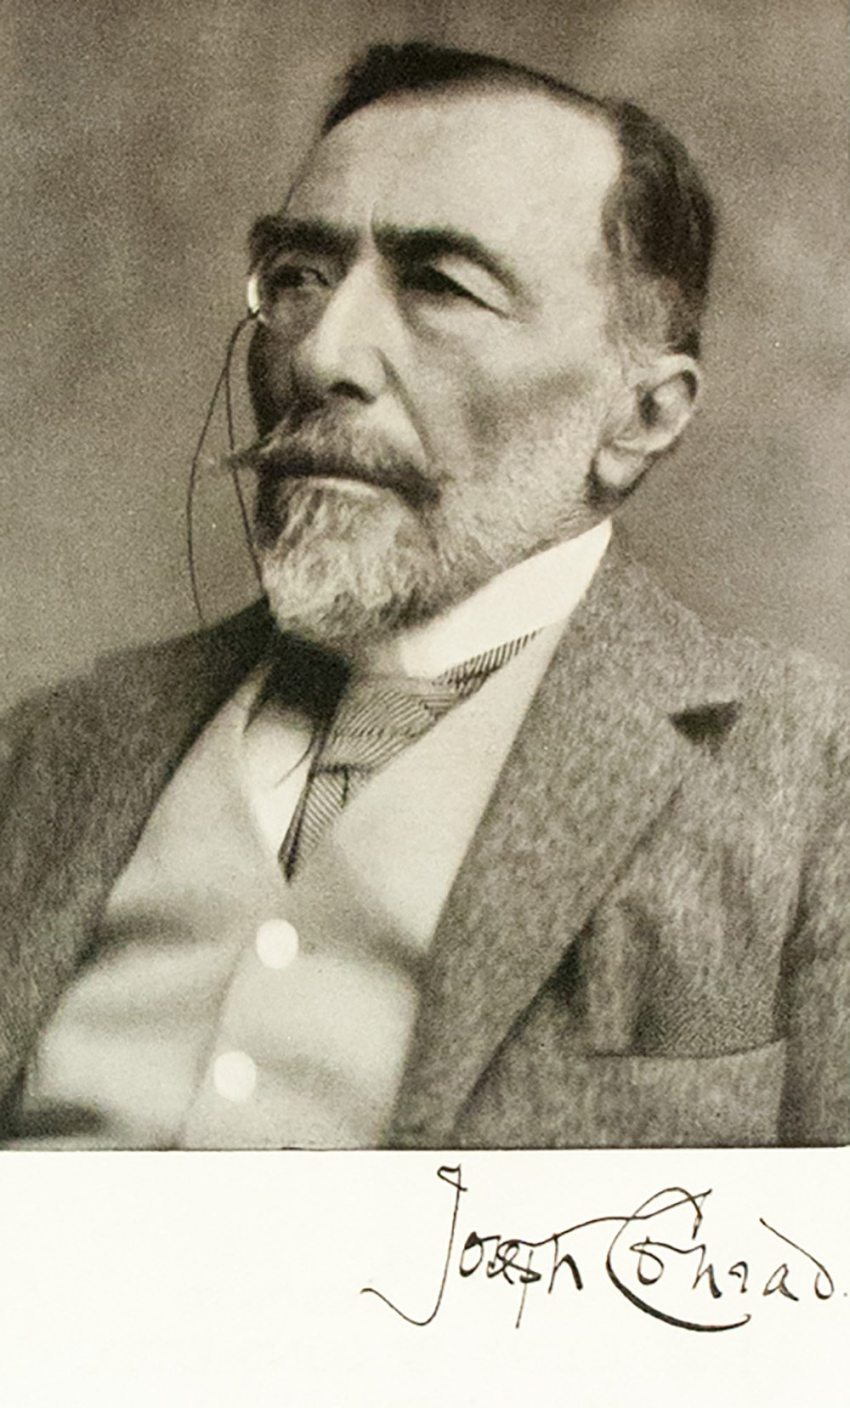 The Works of Joseph Conrad (Including Almayer's Folly; An Outcast of the Islands; The Nigger of the Narcissus; Heart of Darkness; Lord Jim; Nostromo; The Secret Agent; Under Western Eyes).